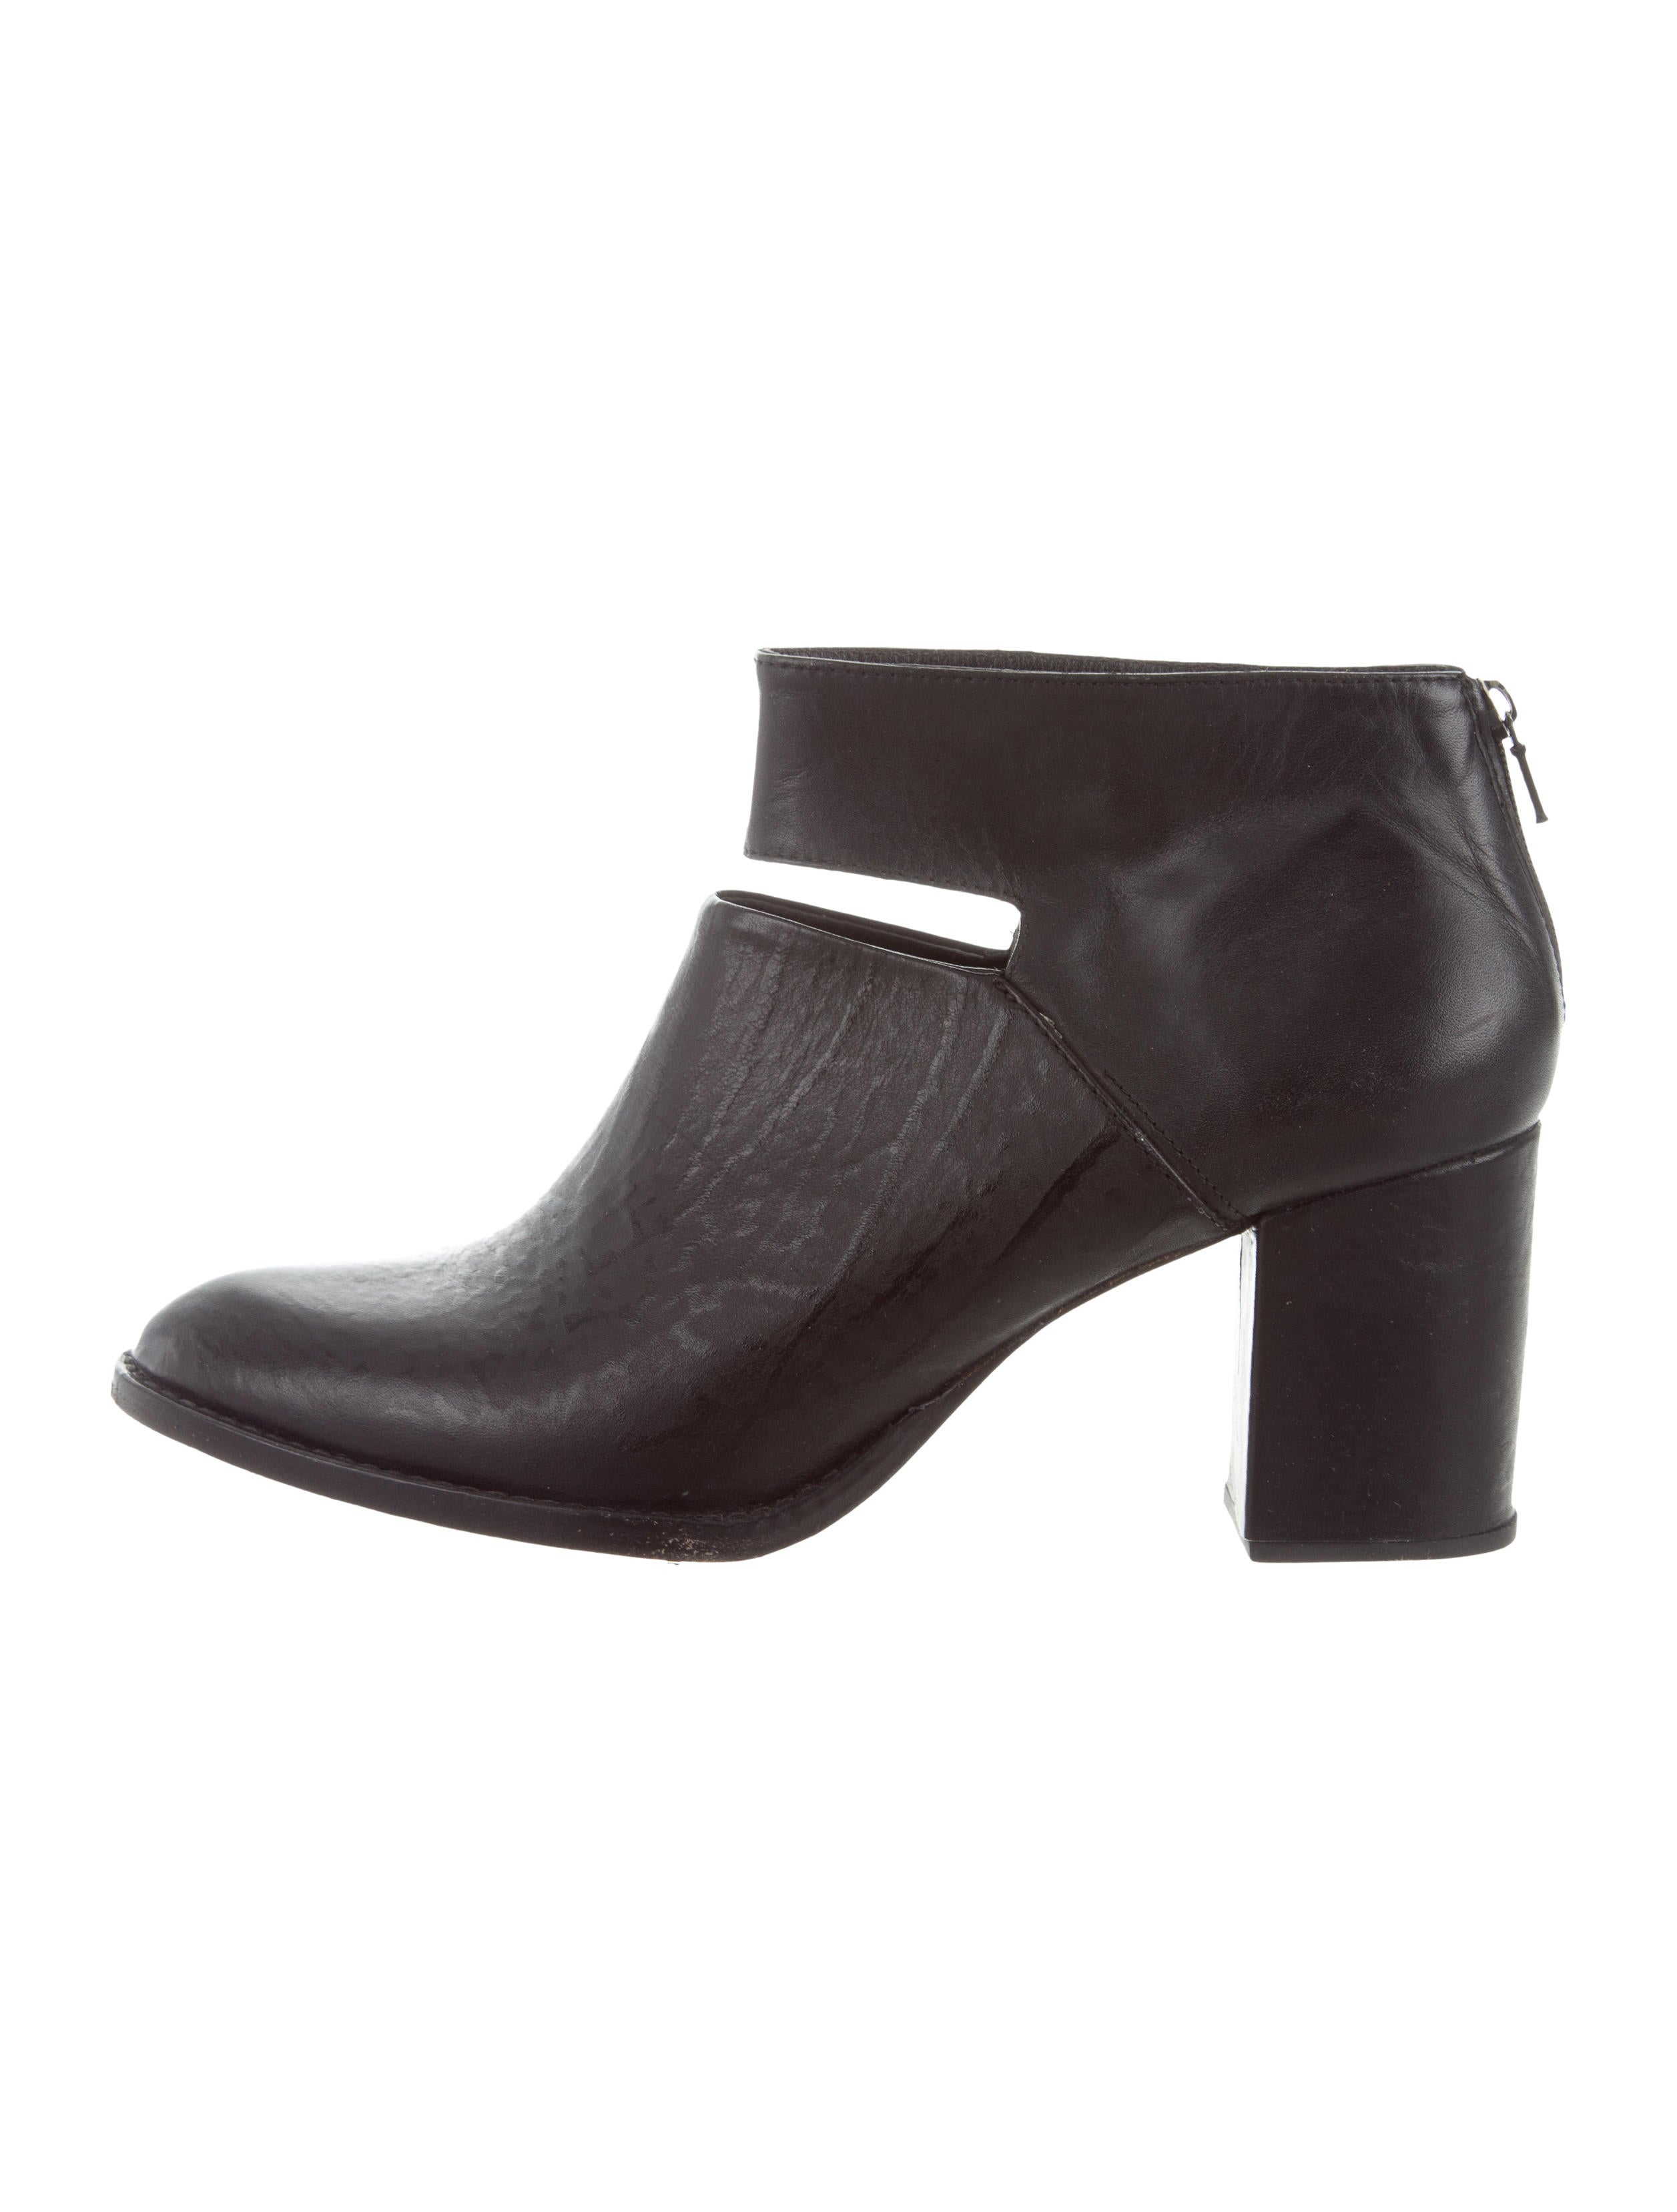 Rachel Comey Semi Pointed-Toe Leather Booties cheap sale perfect pre order online order cheap online find great cheap price discount factory outlet 5eWpGDj